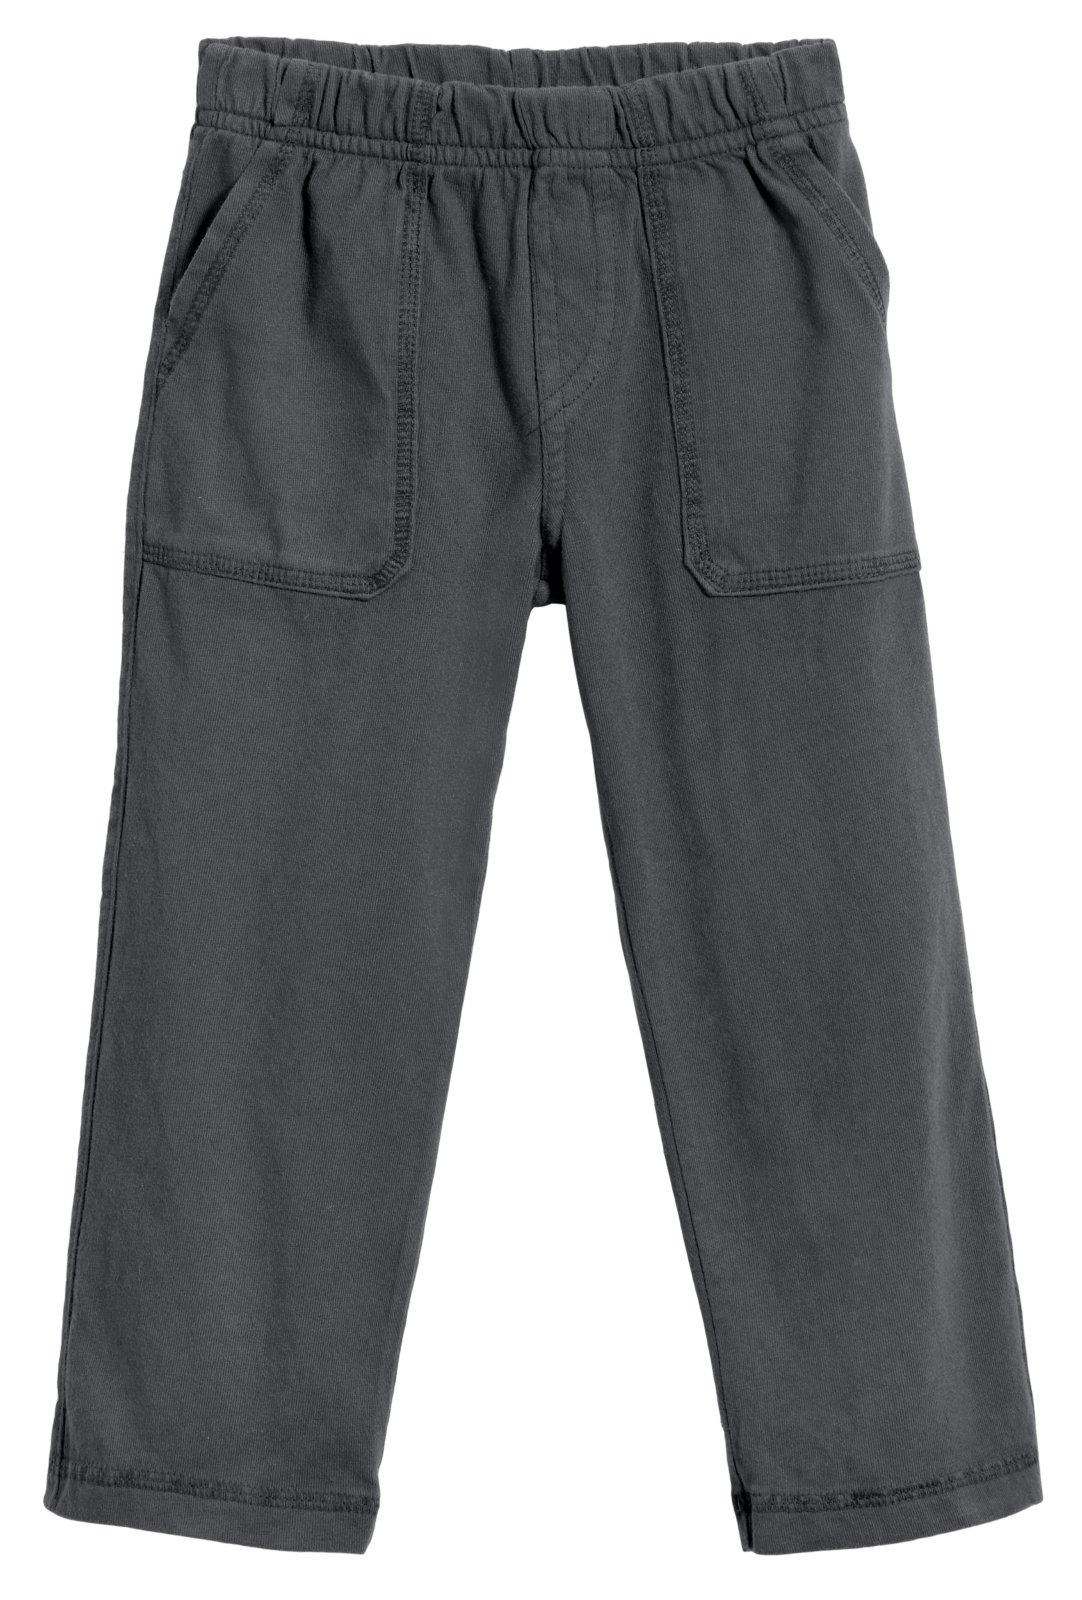 City Threads Big Boys' and Girls' Soft Jersey Tonal Stitch Pant Perfect for Sensitive Skin SPD Sensory Friendly Clothing - Charcoal 7